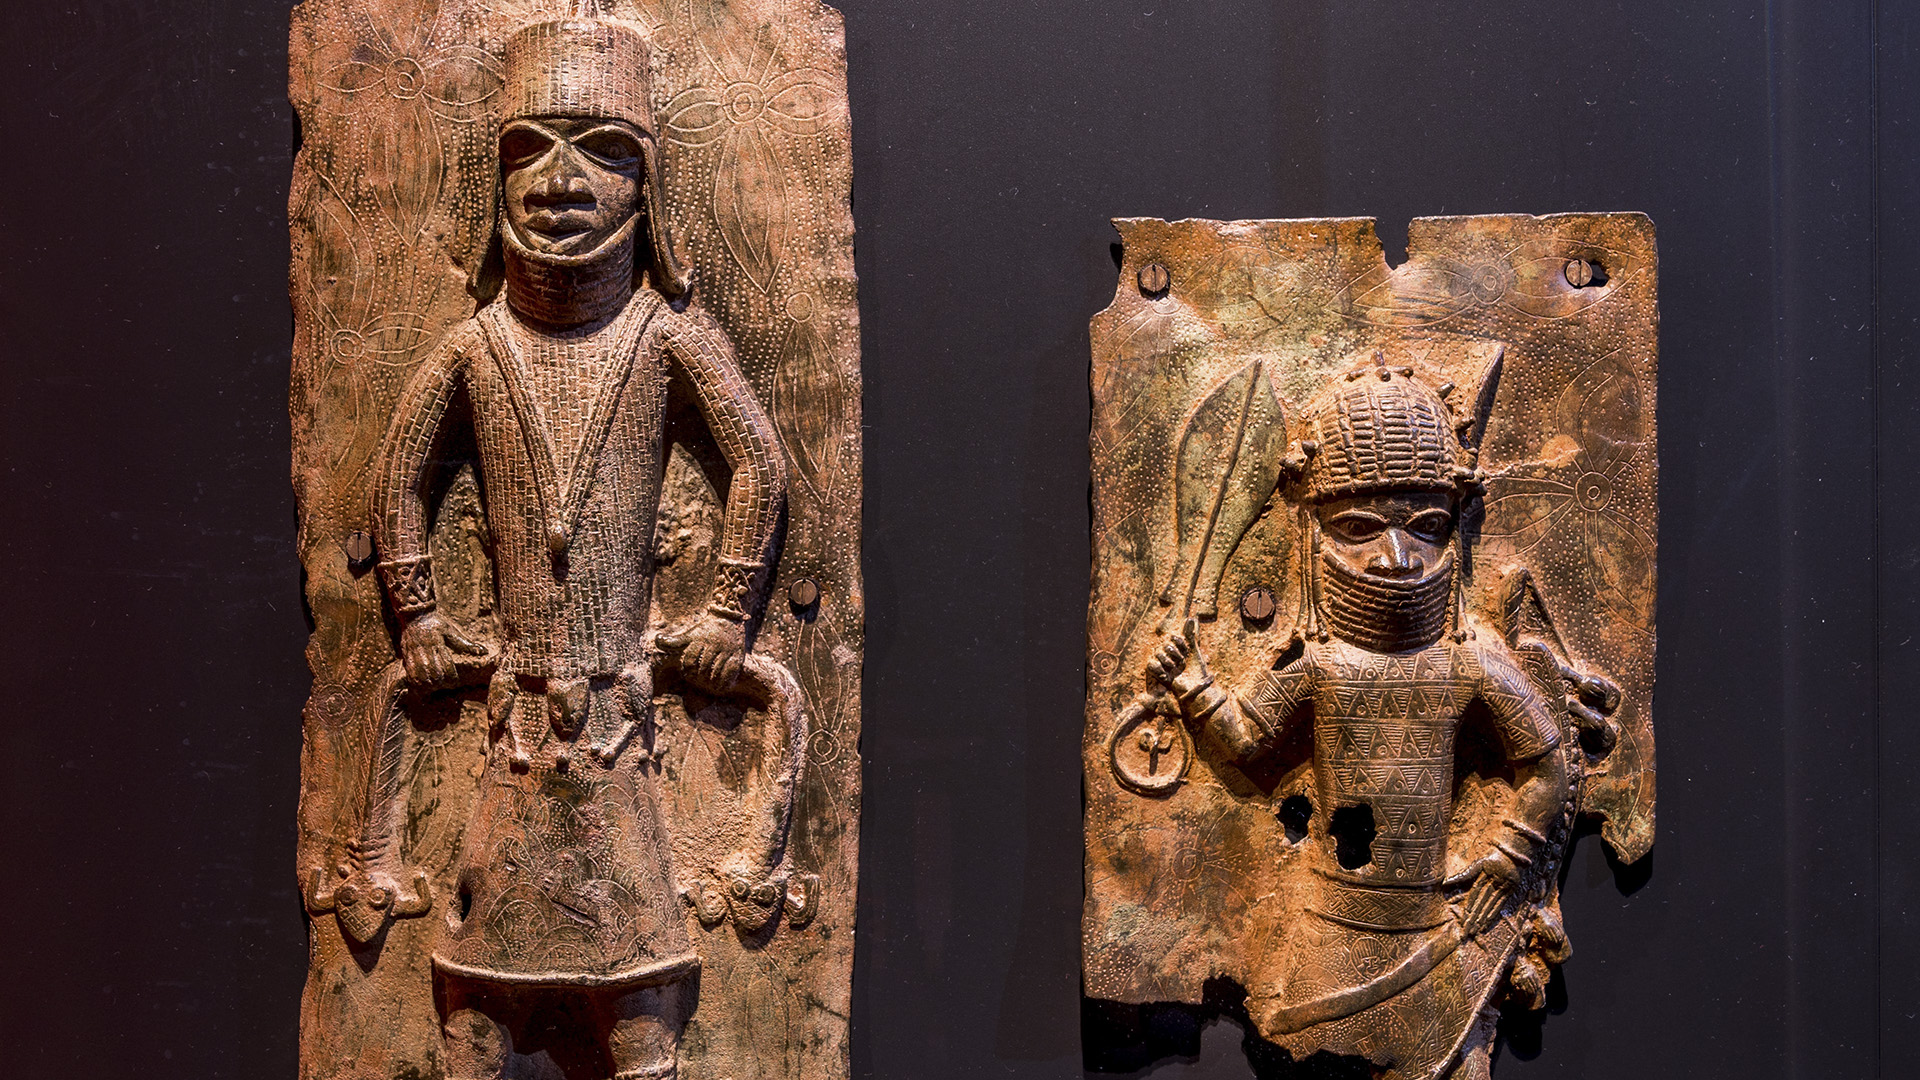 PHOTOS: What The Imminent German Return Of Pillaged Artifacts Means For Nigerian History